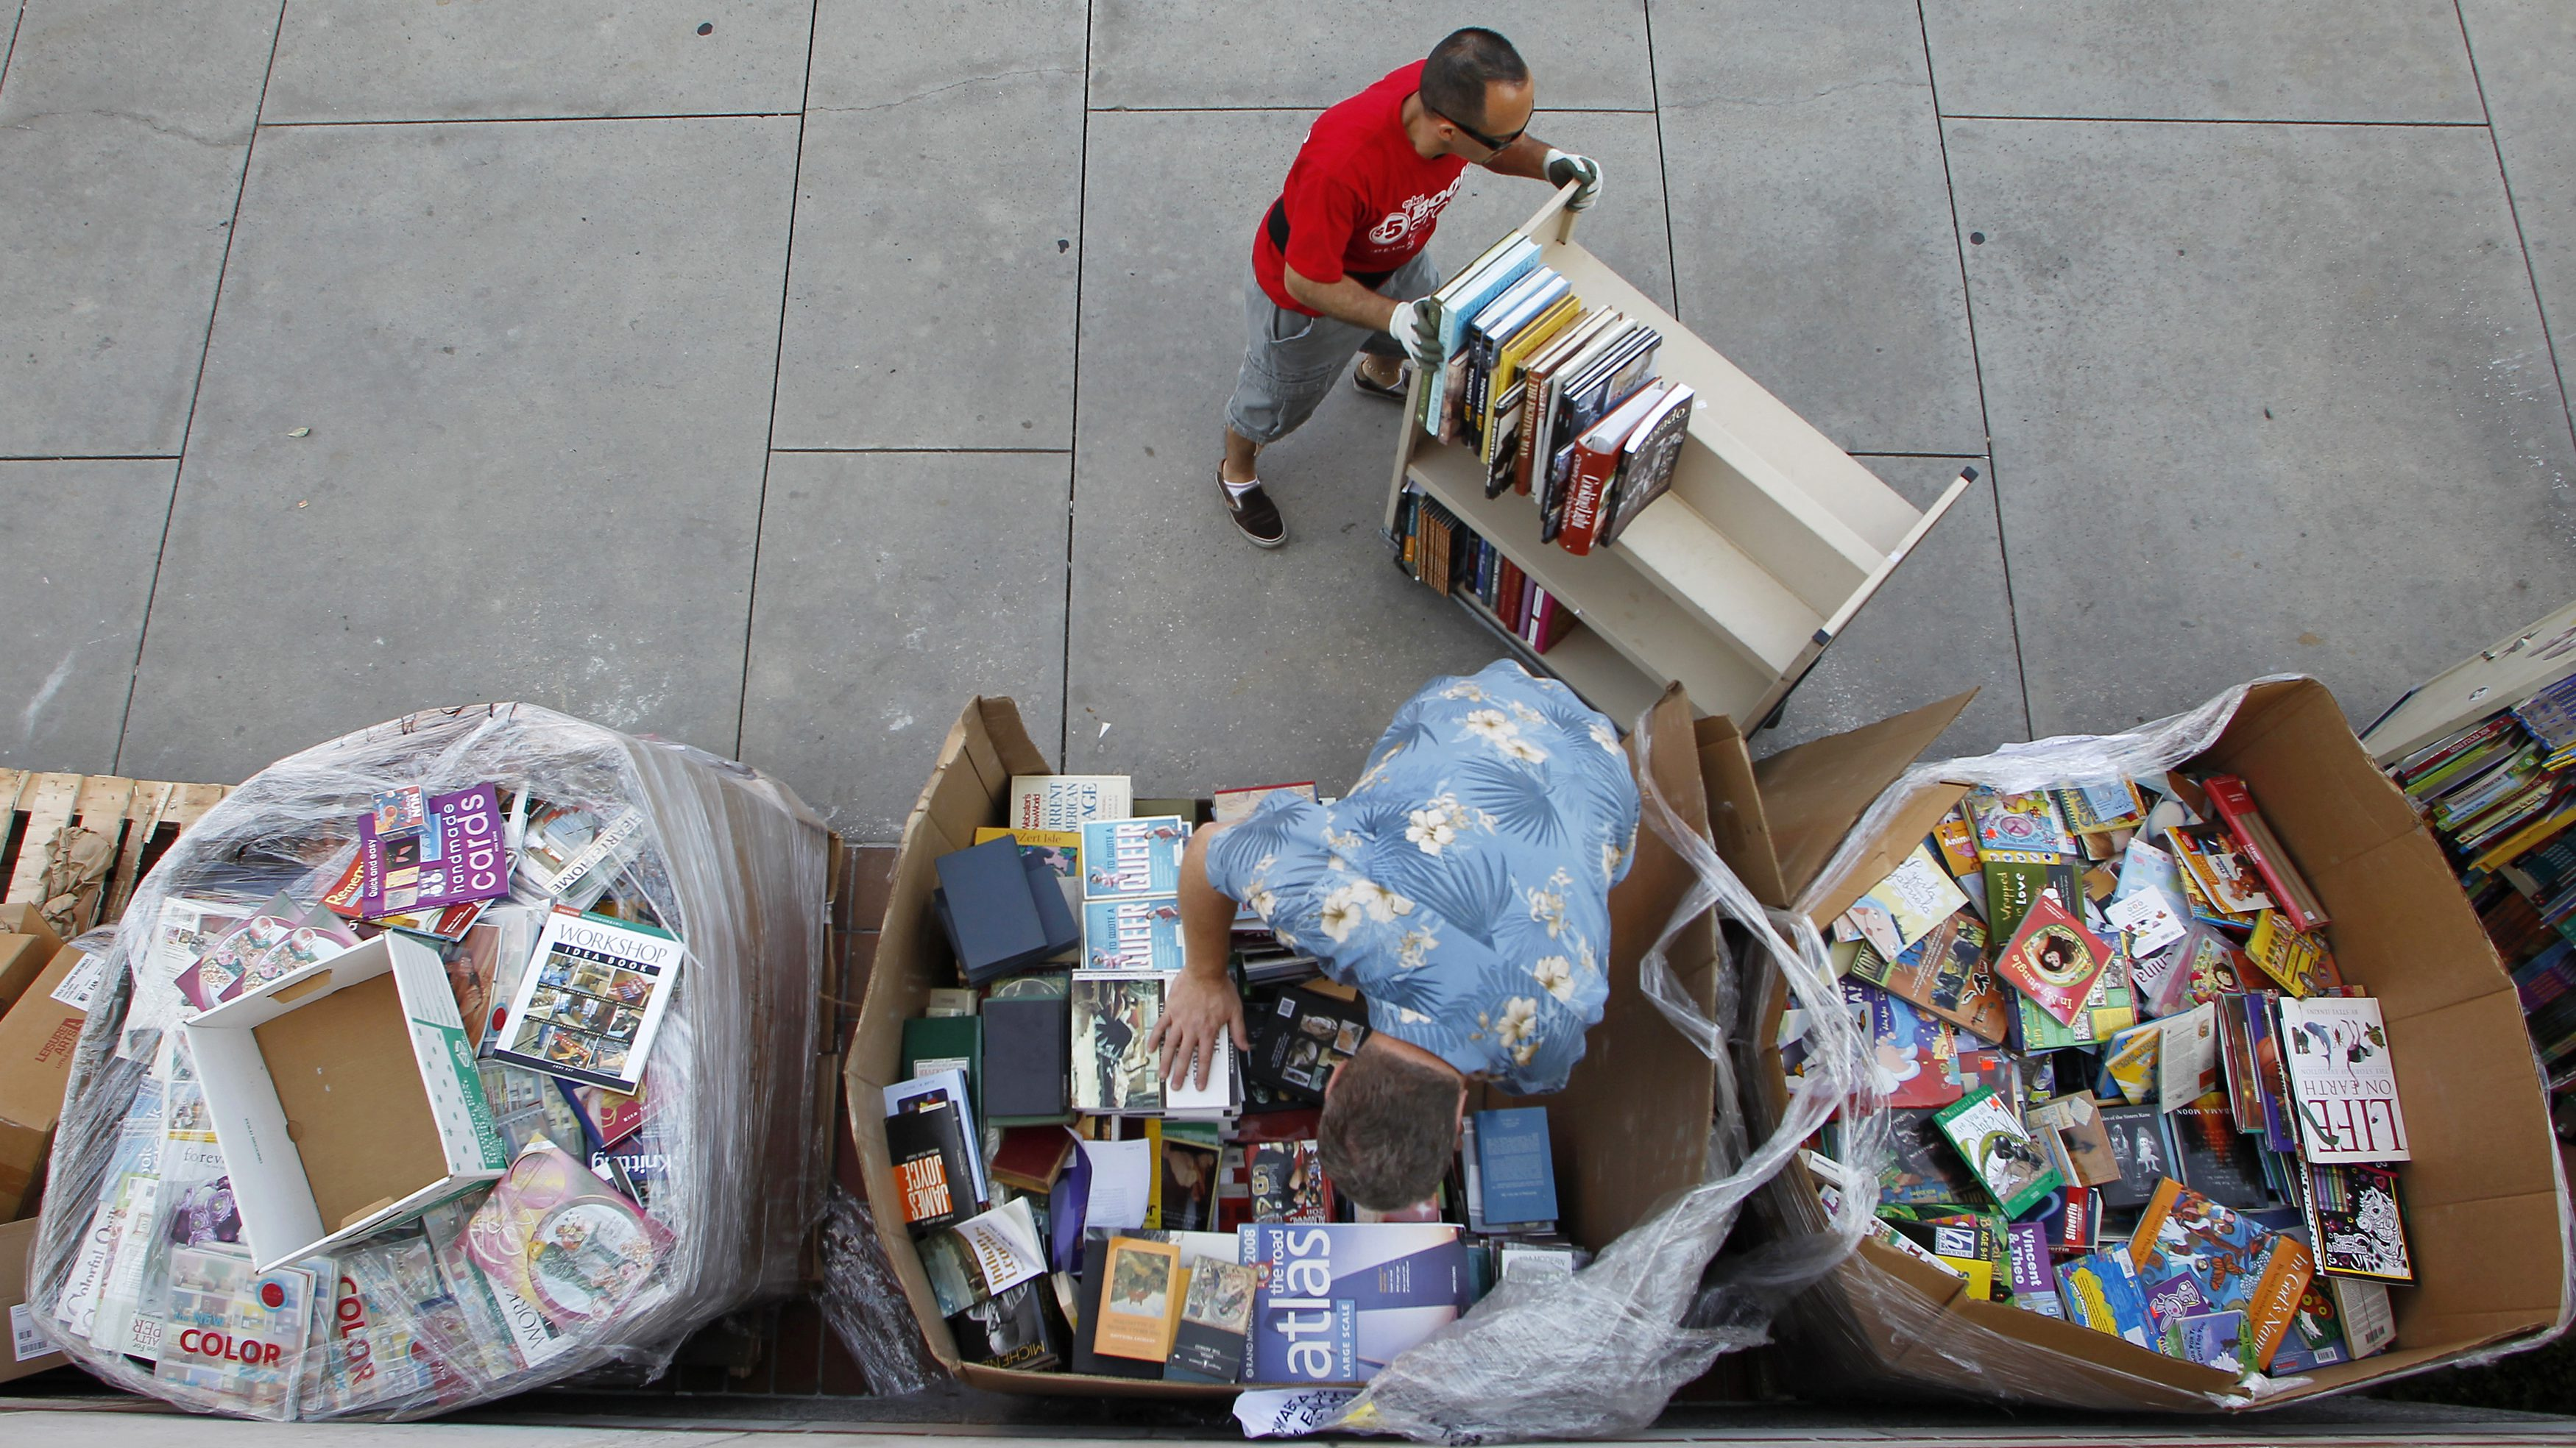 """Serapin De La Torre (top) and Greg Schwabe (bottom) load books from pallets onto a cart to re-stock shelves at the """"$5.00 or less BOOKSTORE"""" booth at the Los Angeles Times Festival of Books on the campus of the University of Southern California in Los Angeles April 21, 2012. REUTERS/Danny Moloshok (UNITED STATES - Tags: SOCIETY MEDIA) - RTR311KZ"""